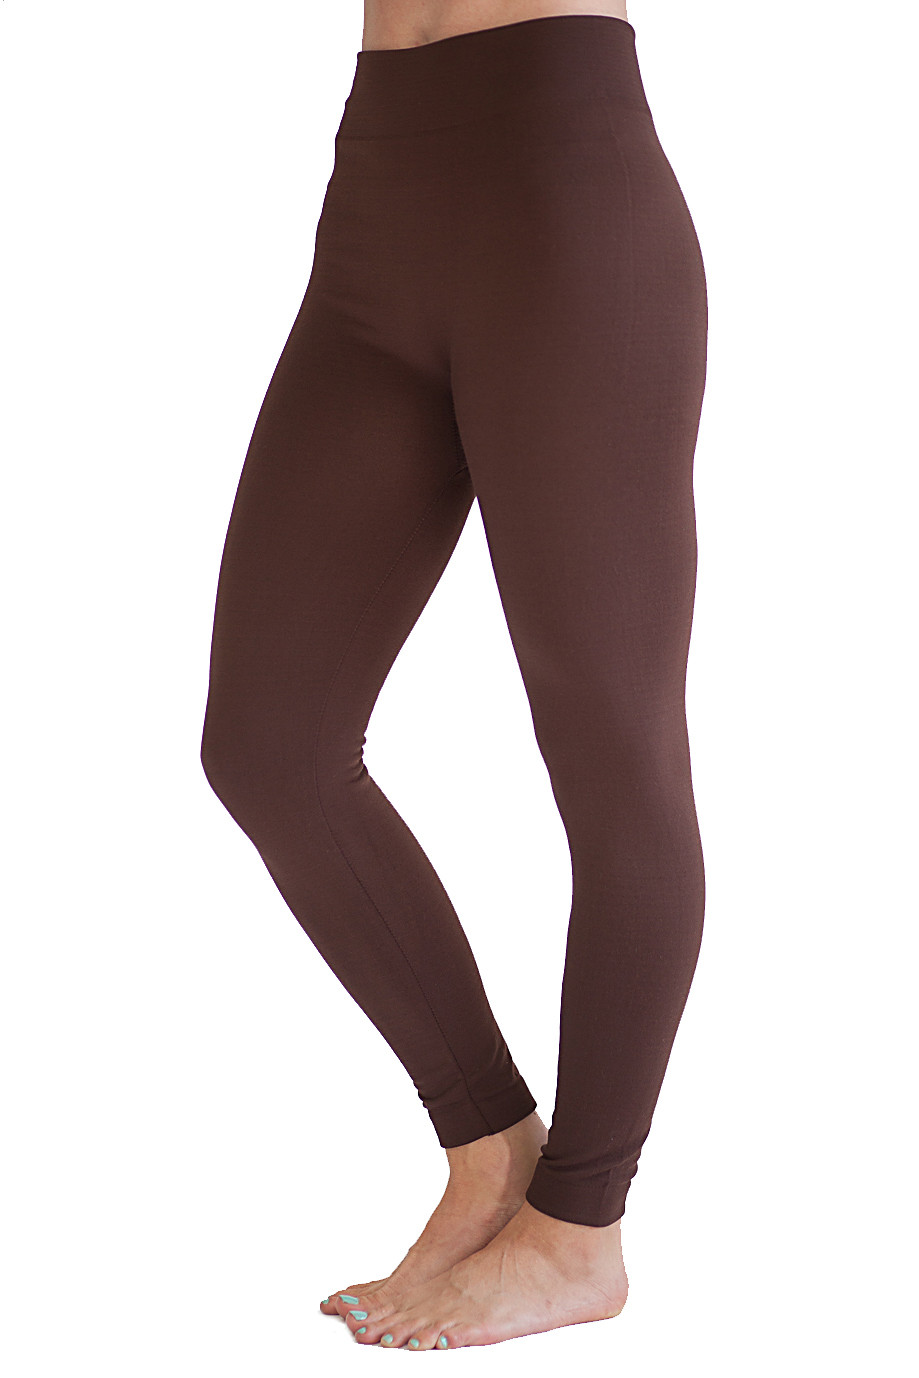 brown leggings BXFTEHZ